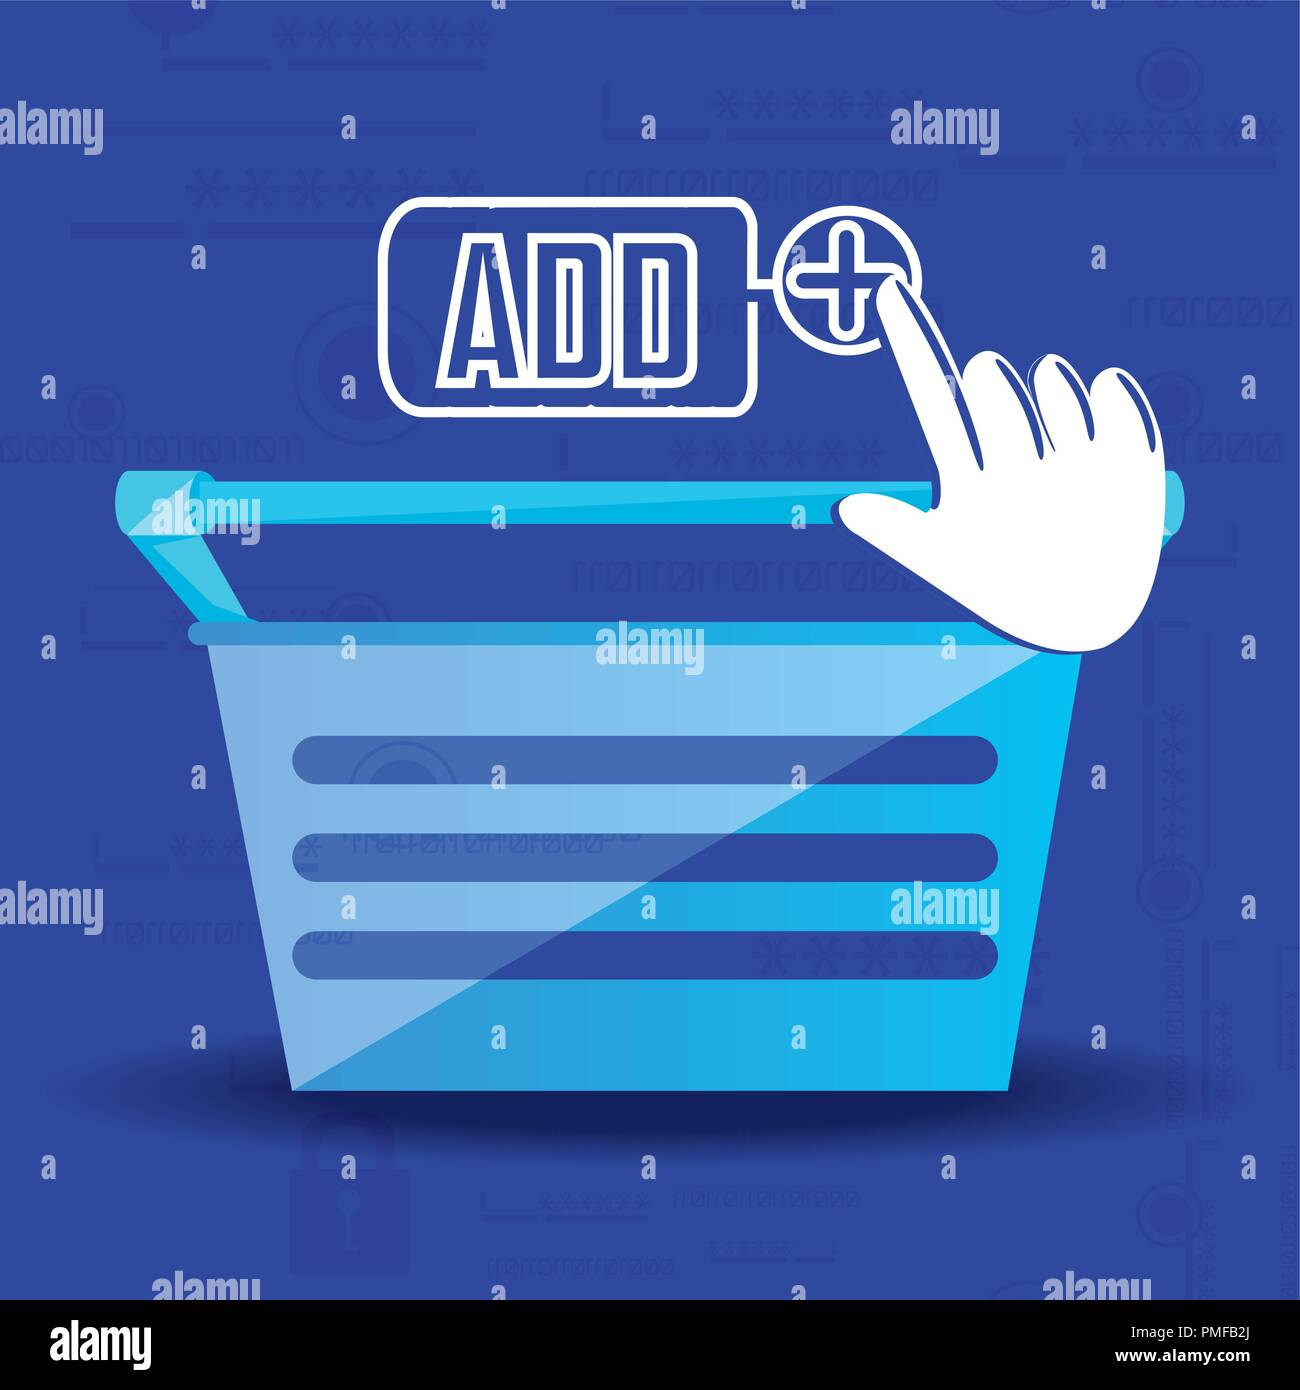 Online Shopping mit Korb Vector Illustration Design hinzufügen Stockbild